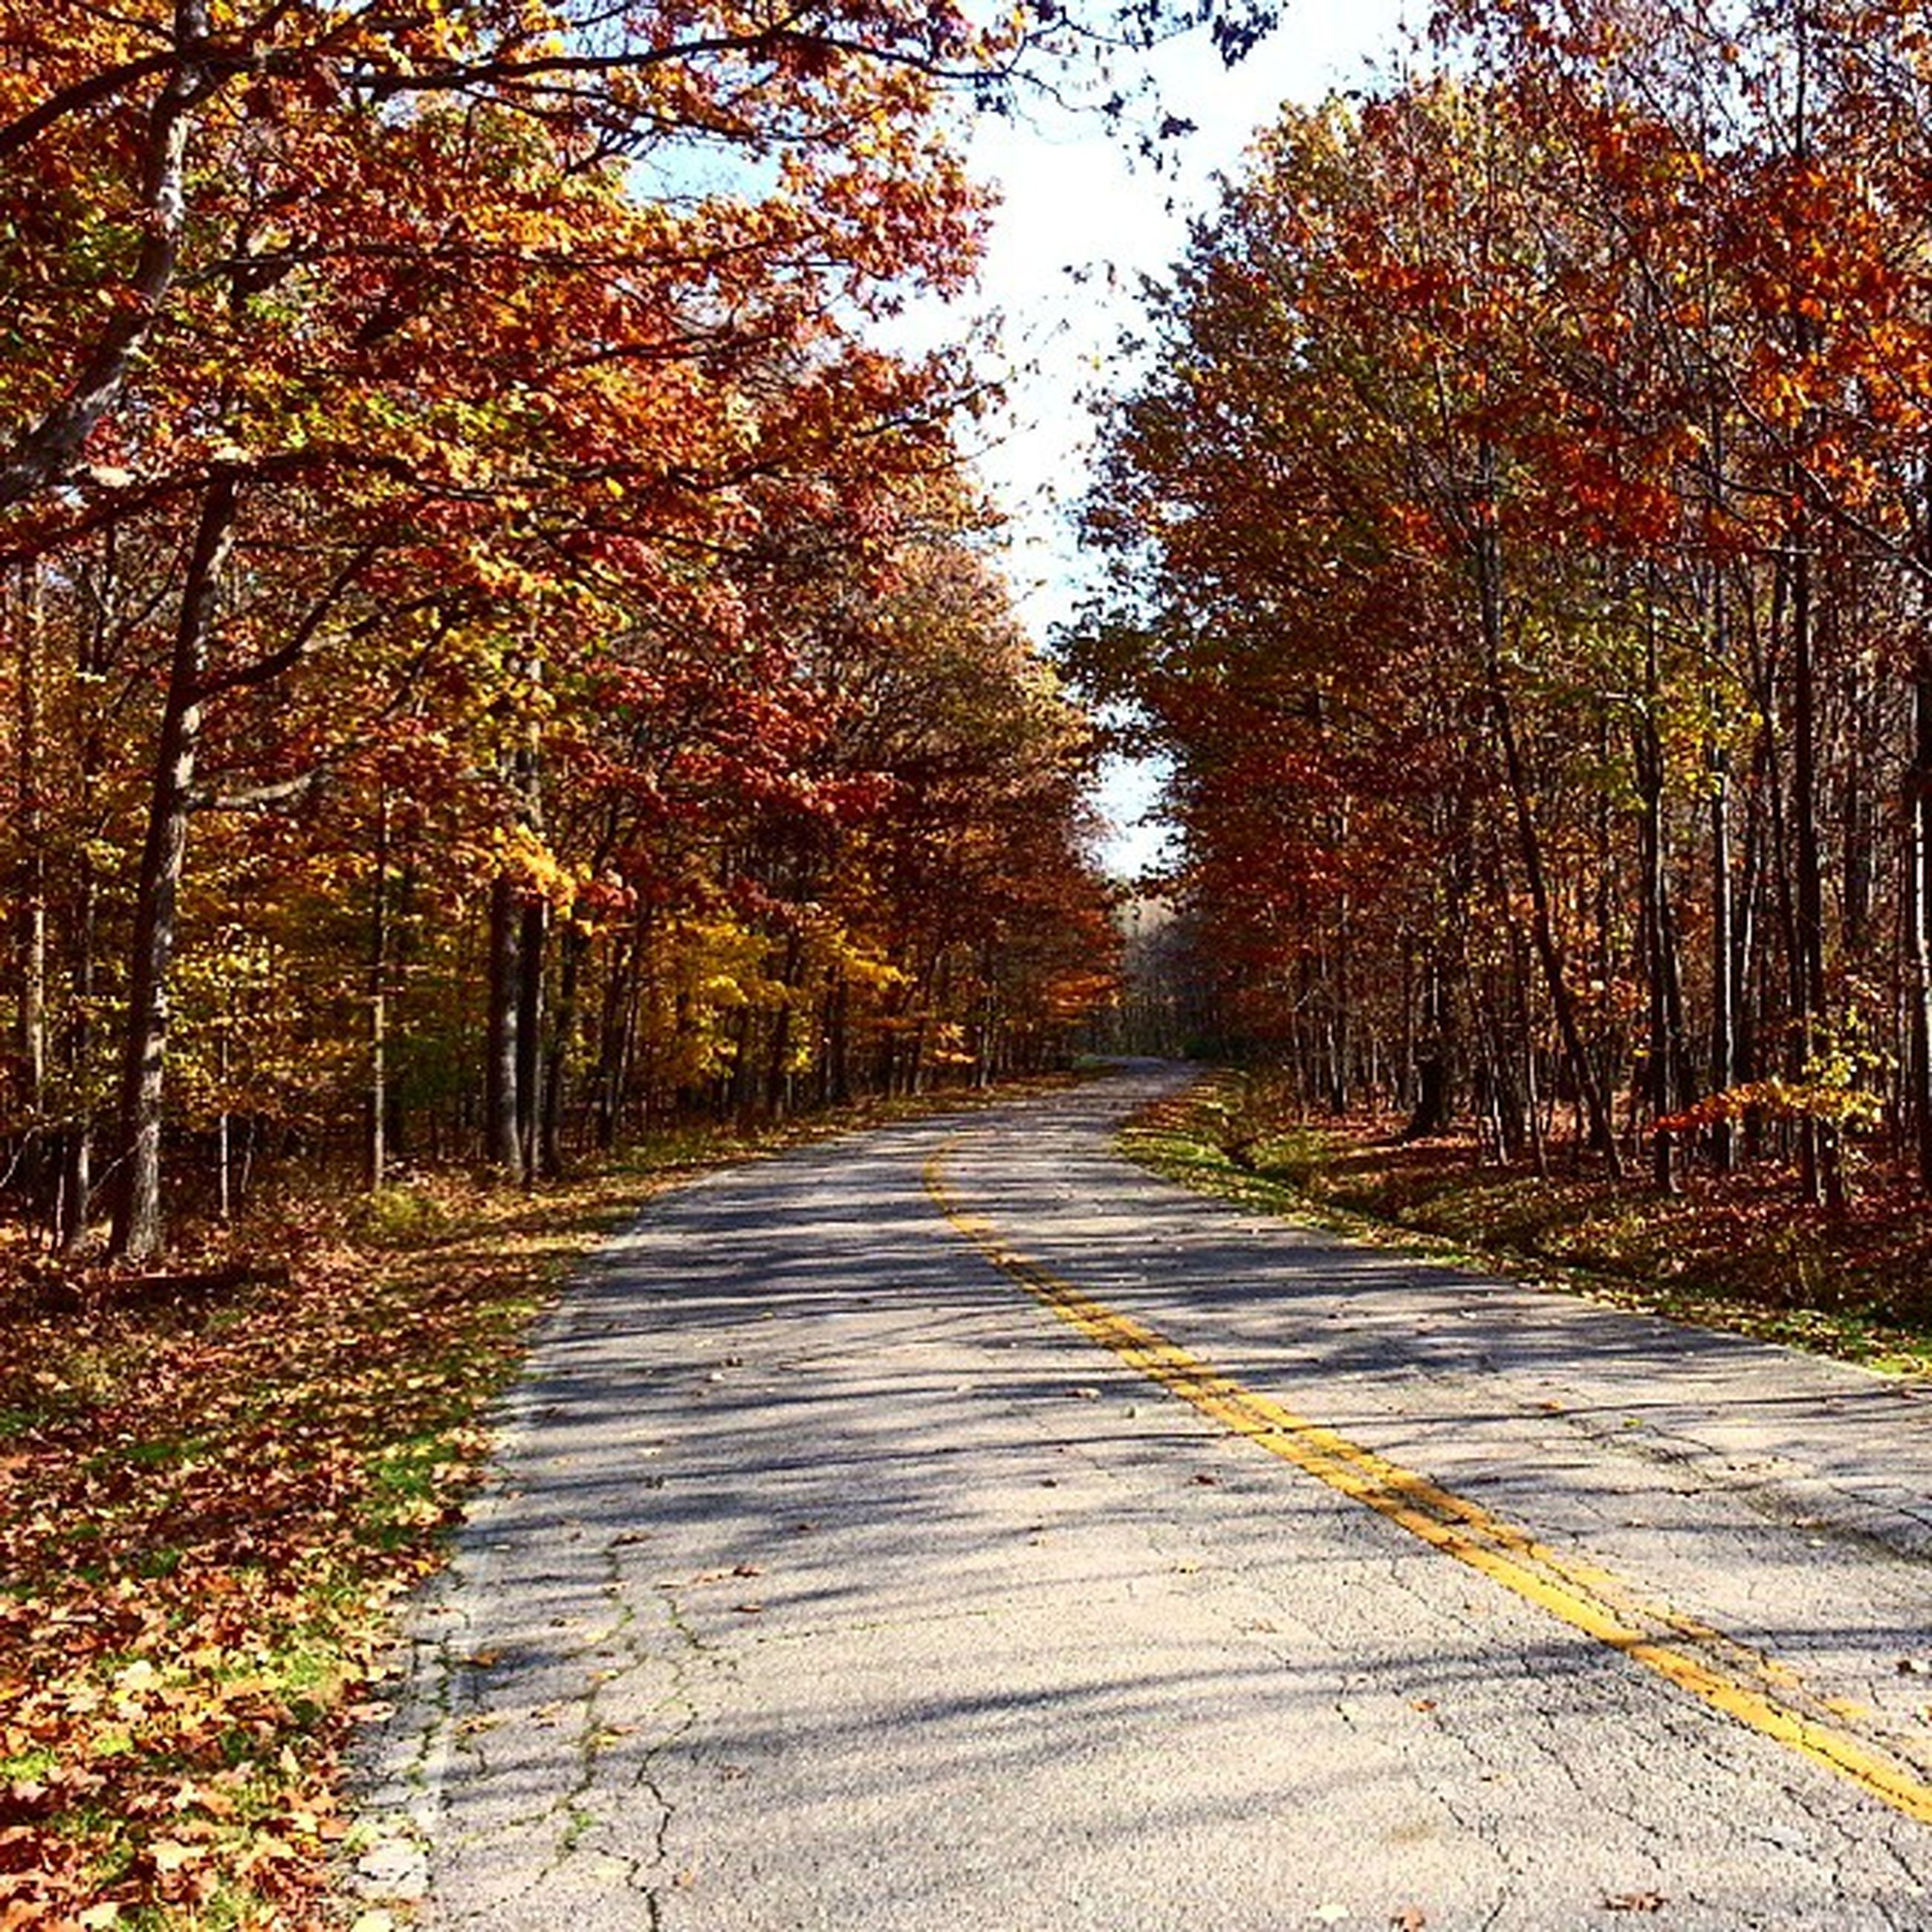 the way forward, tree, diminishing perspective, vanishing point, transportation, road, tranquility, autumn, nature, tranquil scene, empty road, growth, forest, long, country road, empty, asphalt, beauty in nature, day, outdoors